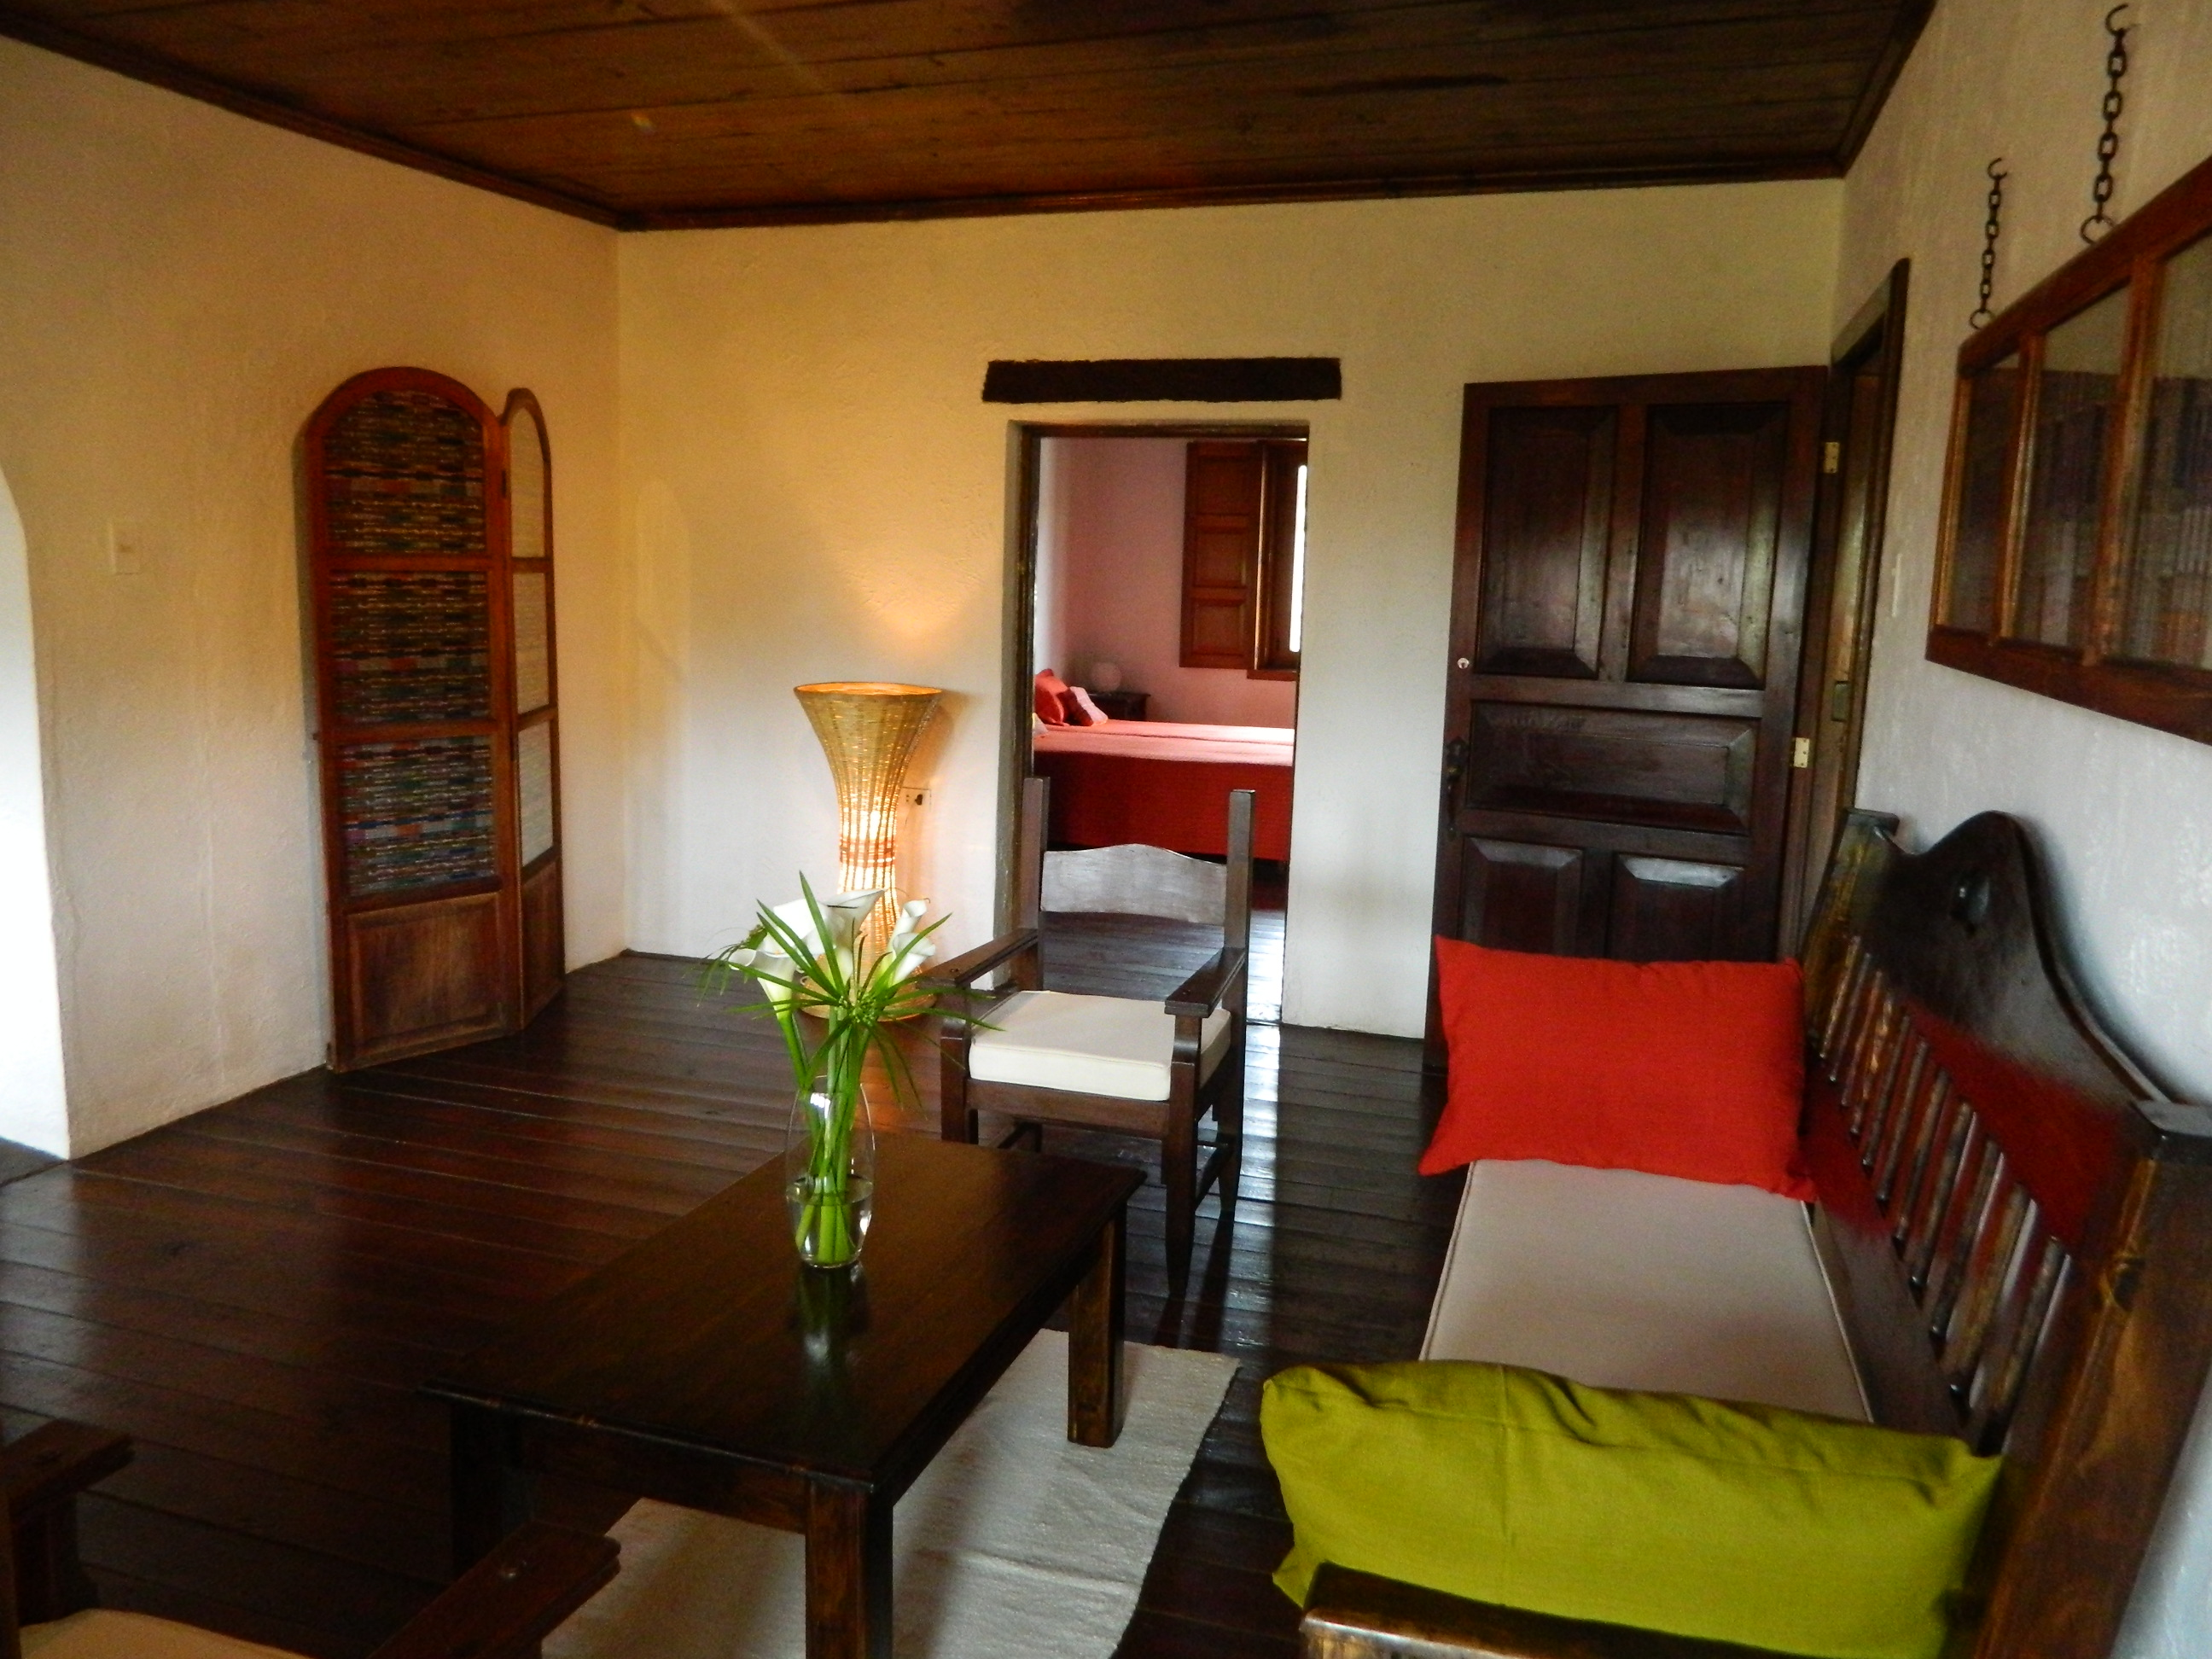 3714 PARISIAN TYPE APARTMENT FOR RENT IN CENTER ANTIGUA G. (Furnished) (Jb)